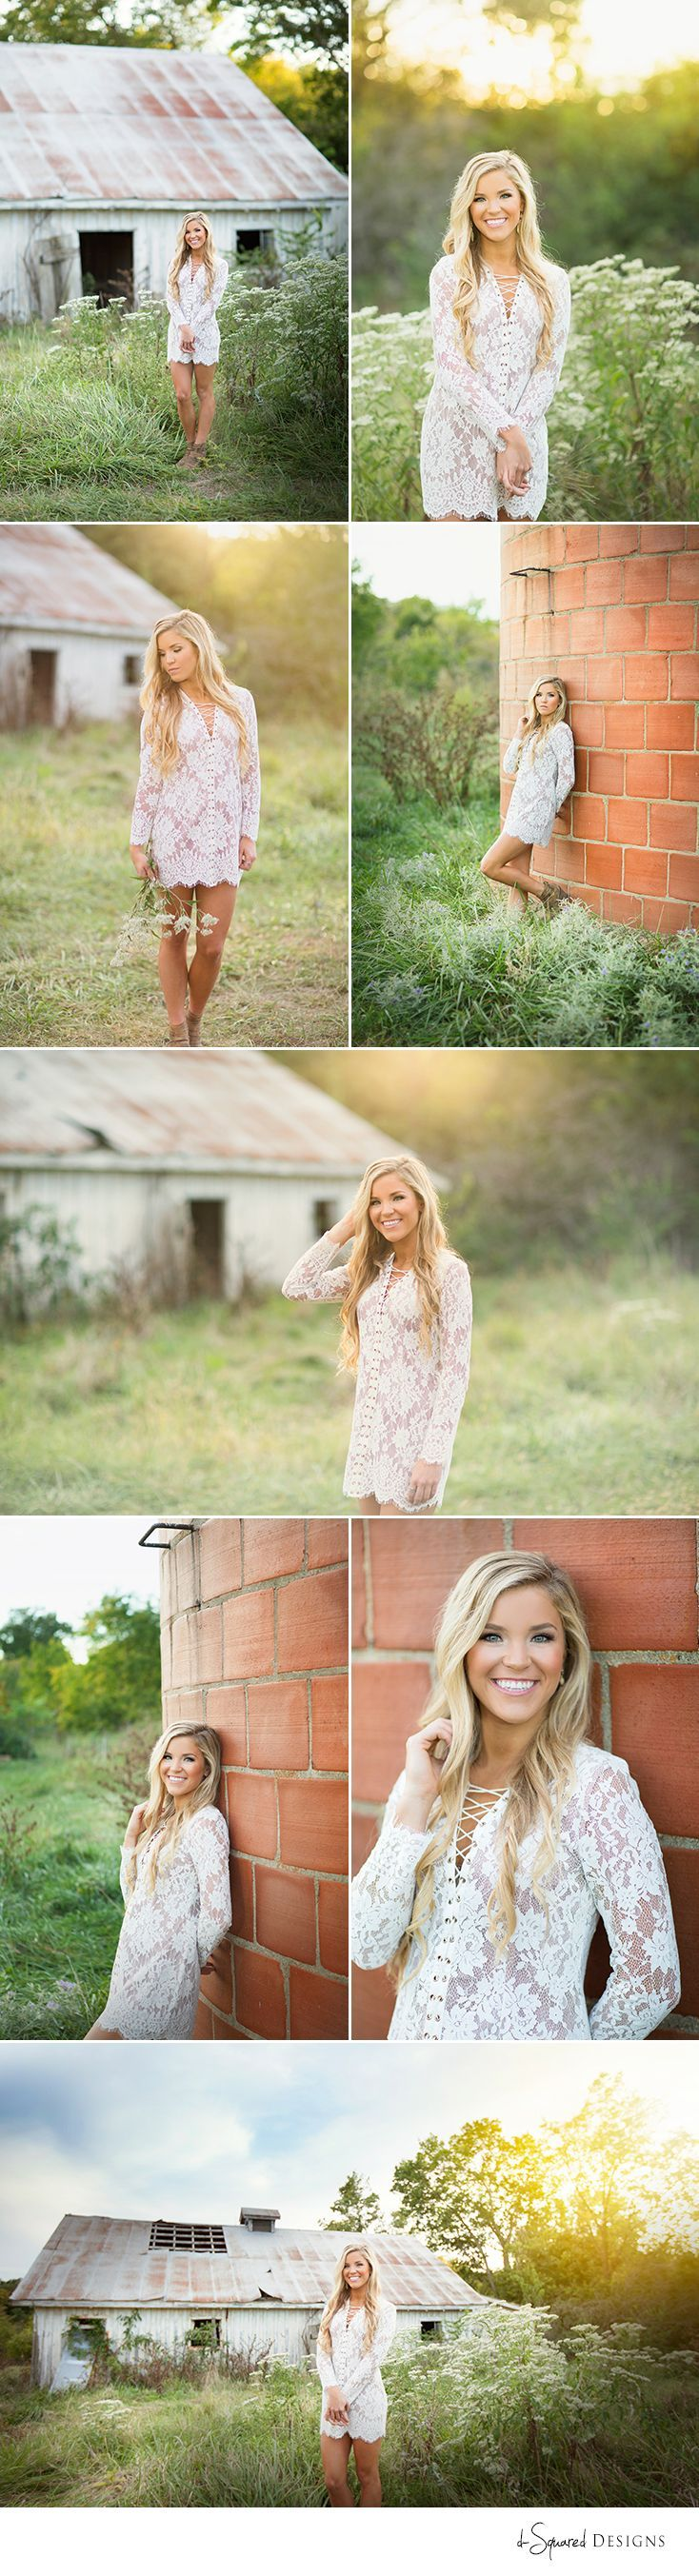 d-Squared Designs St. Louis, MO Senior Photography. Senior Photography. Beautiful girl. Country Senior Session.